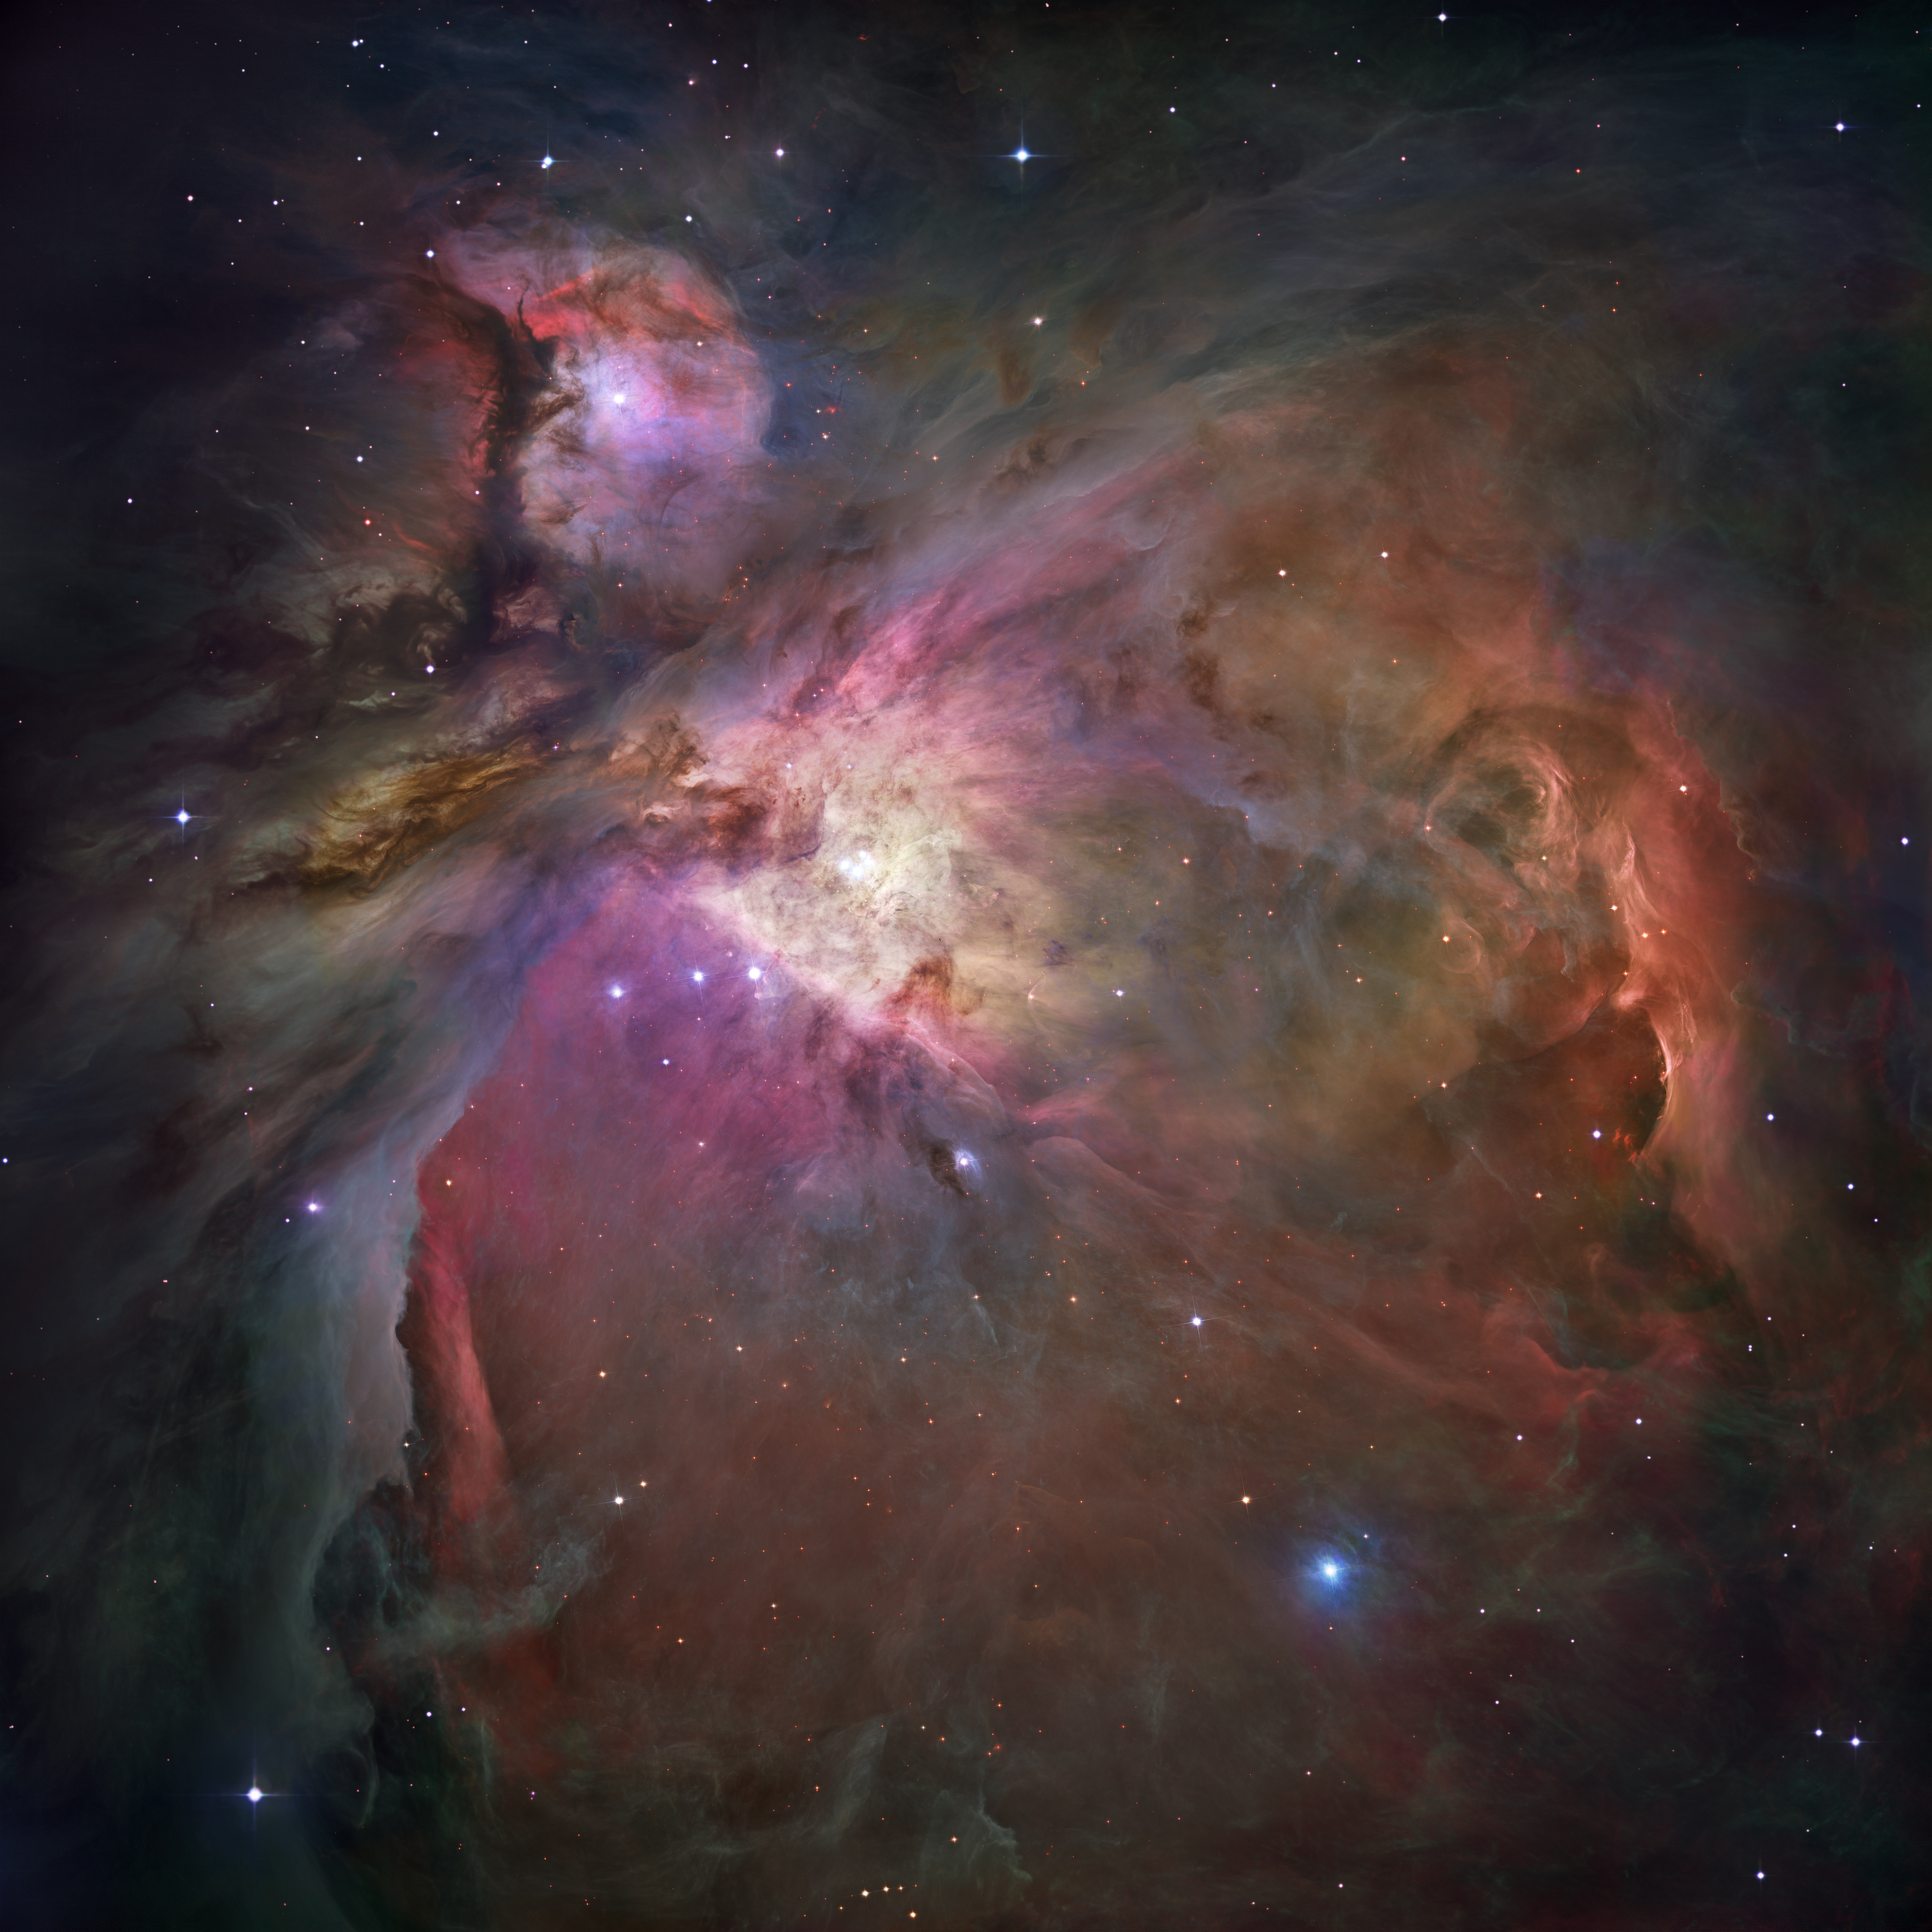 Orion Nebula - Hubble 2006 mosaic